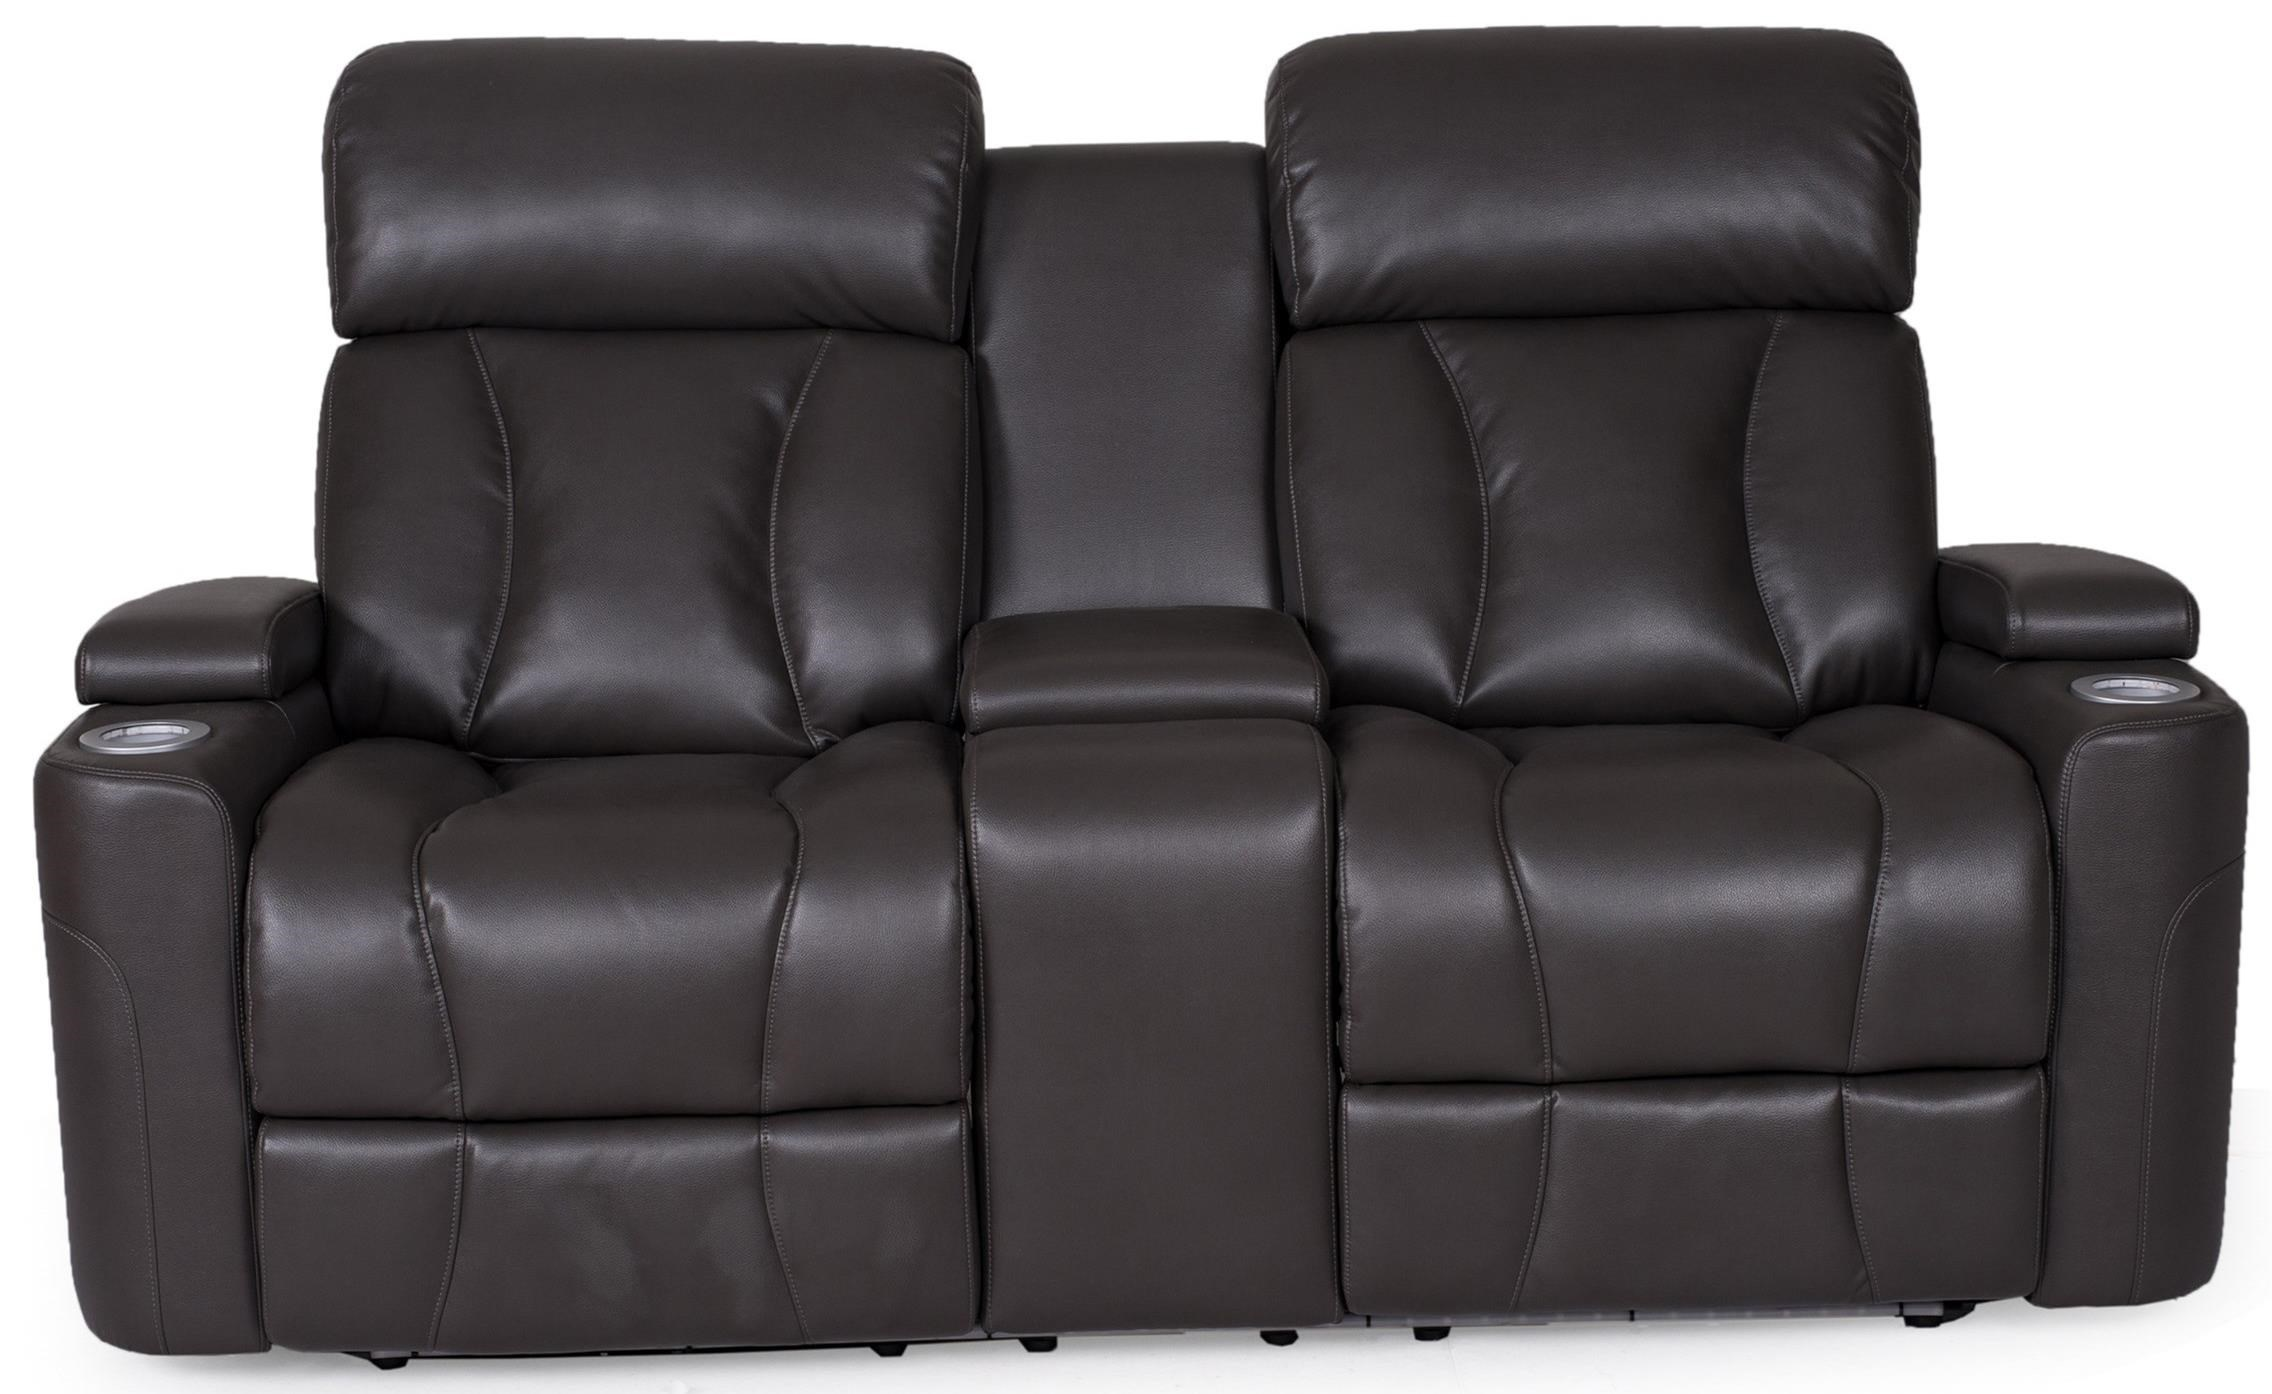 29320 Pwr Rec. Loveseat w/ Pwr Headrest & Console at Sadler's Home Furnishings